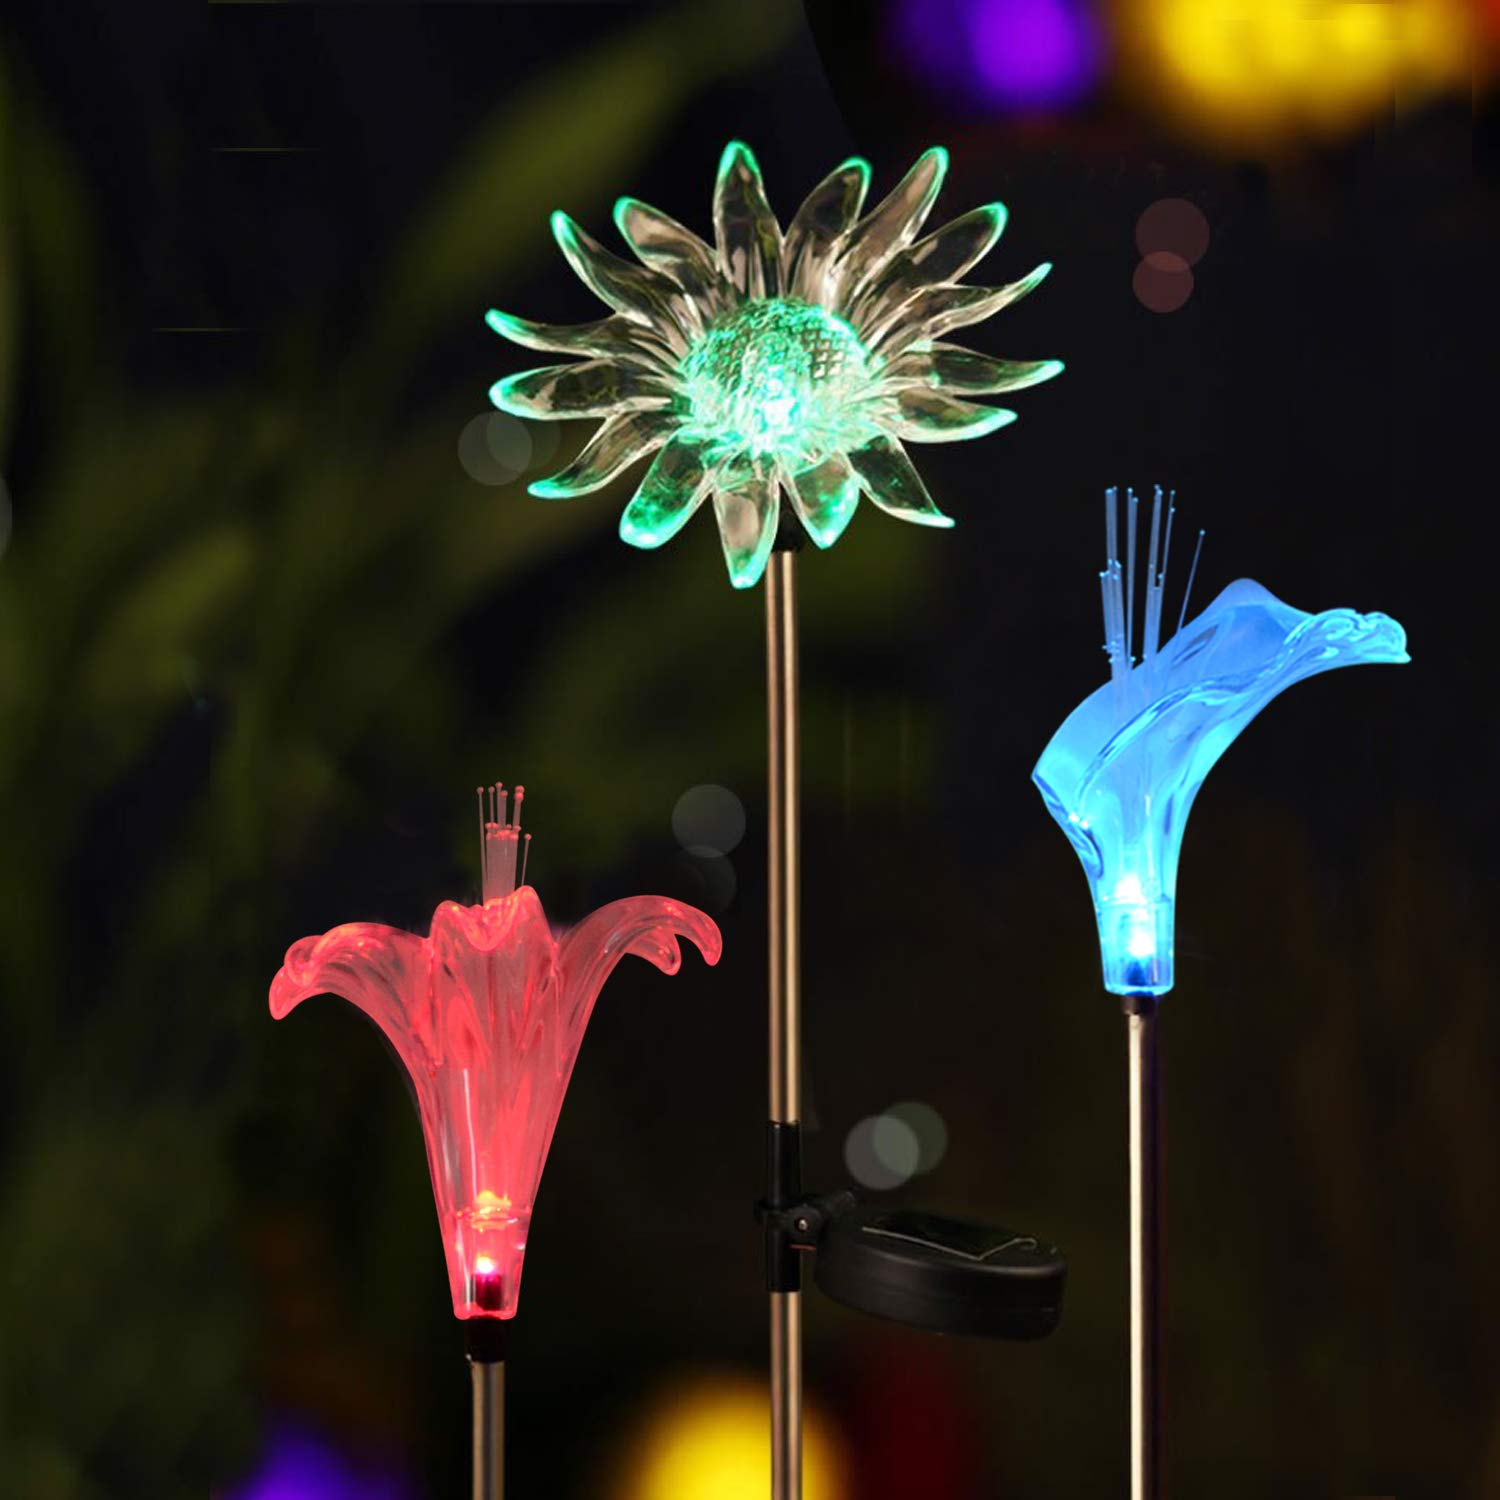 Solar Garden Decoration Lights - Voona 3-Pack Solar Color Changing LED Stake Lights Clear Fiber Lily, Fiber Calla Lily, Daisy Mixed for Outdoor Pathway Party Holiday Christmas JJBH0043